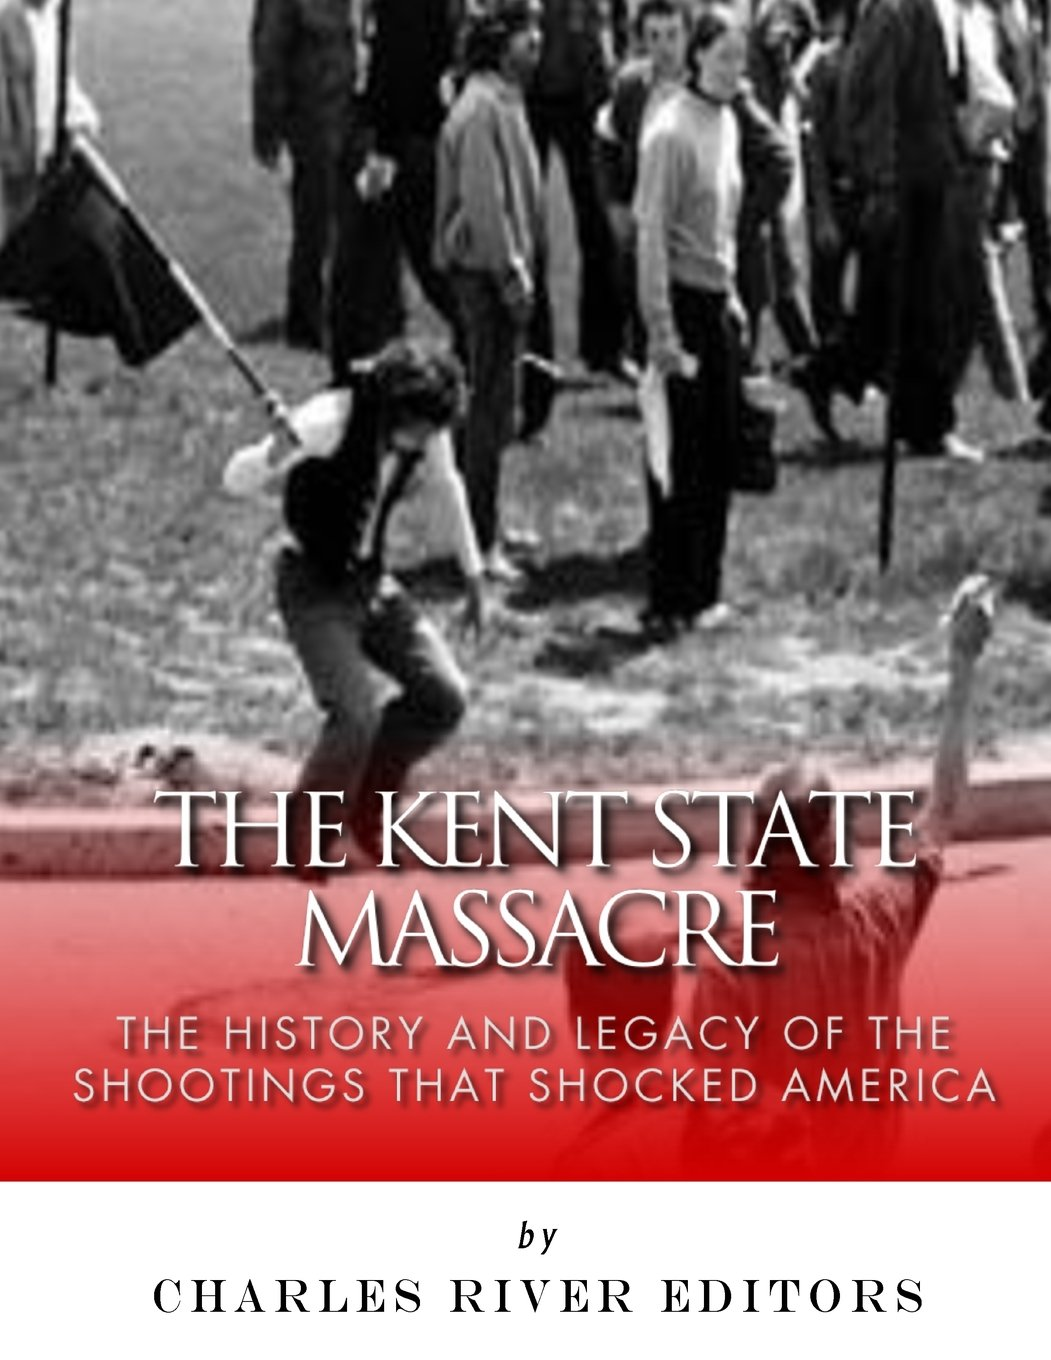 The Kent State Massacre: The History and Legacy of the Shootings That Shocked America PDF